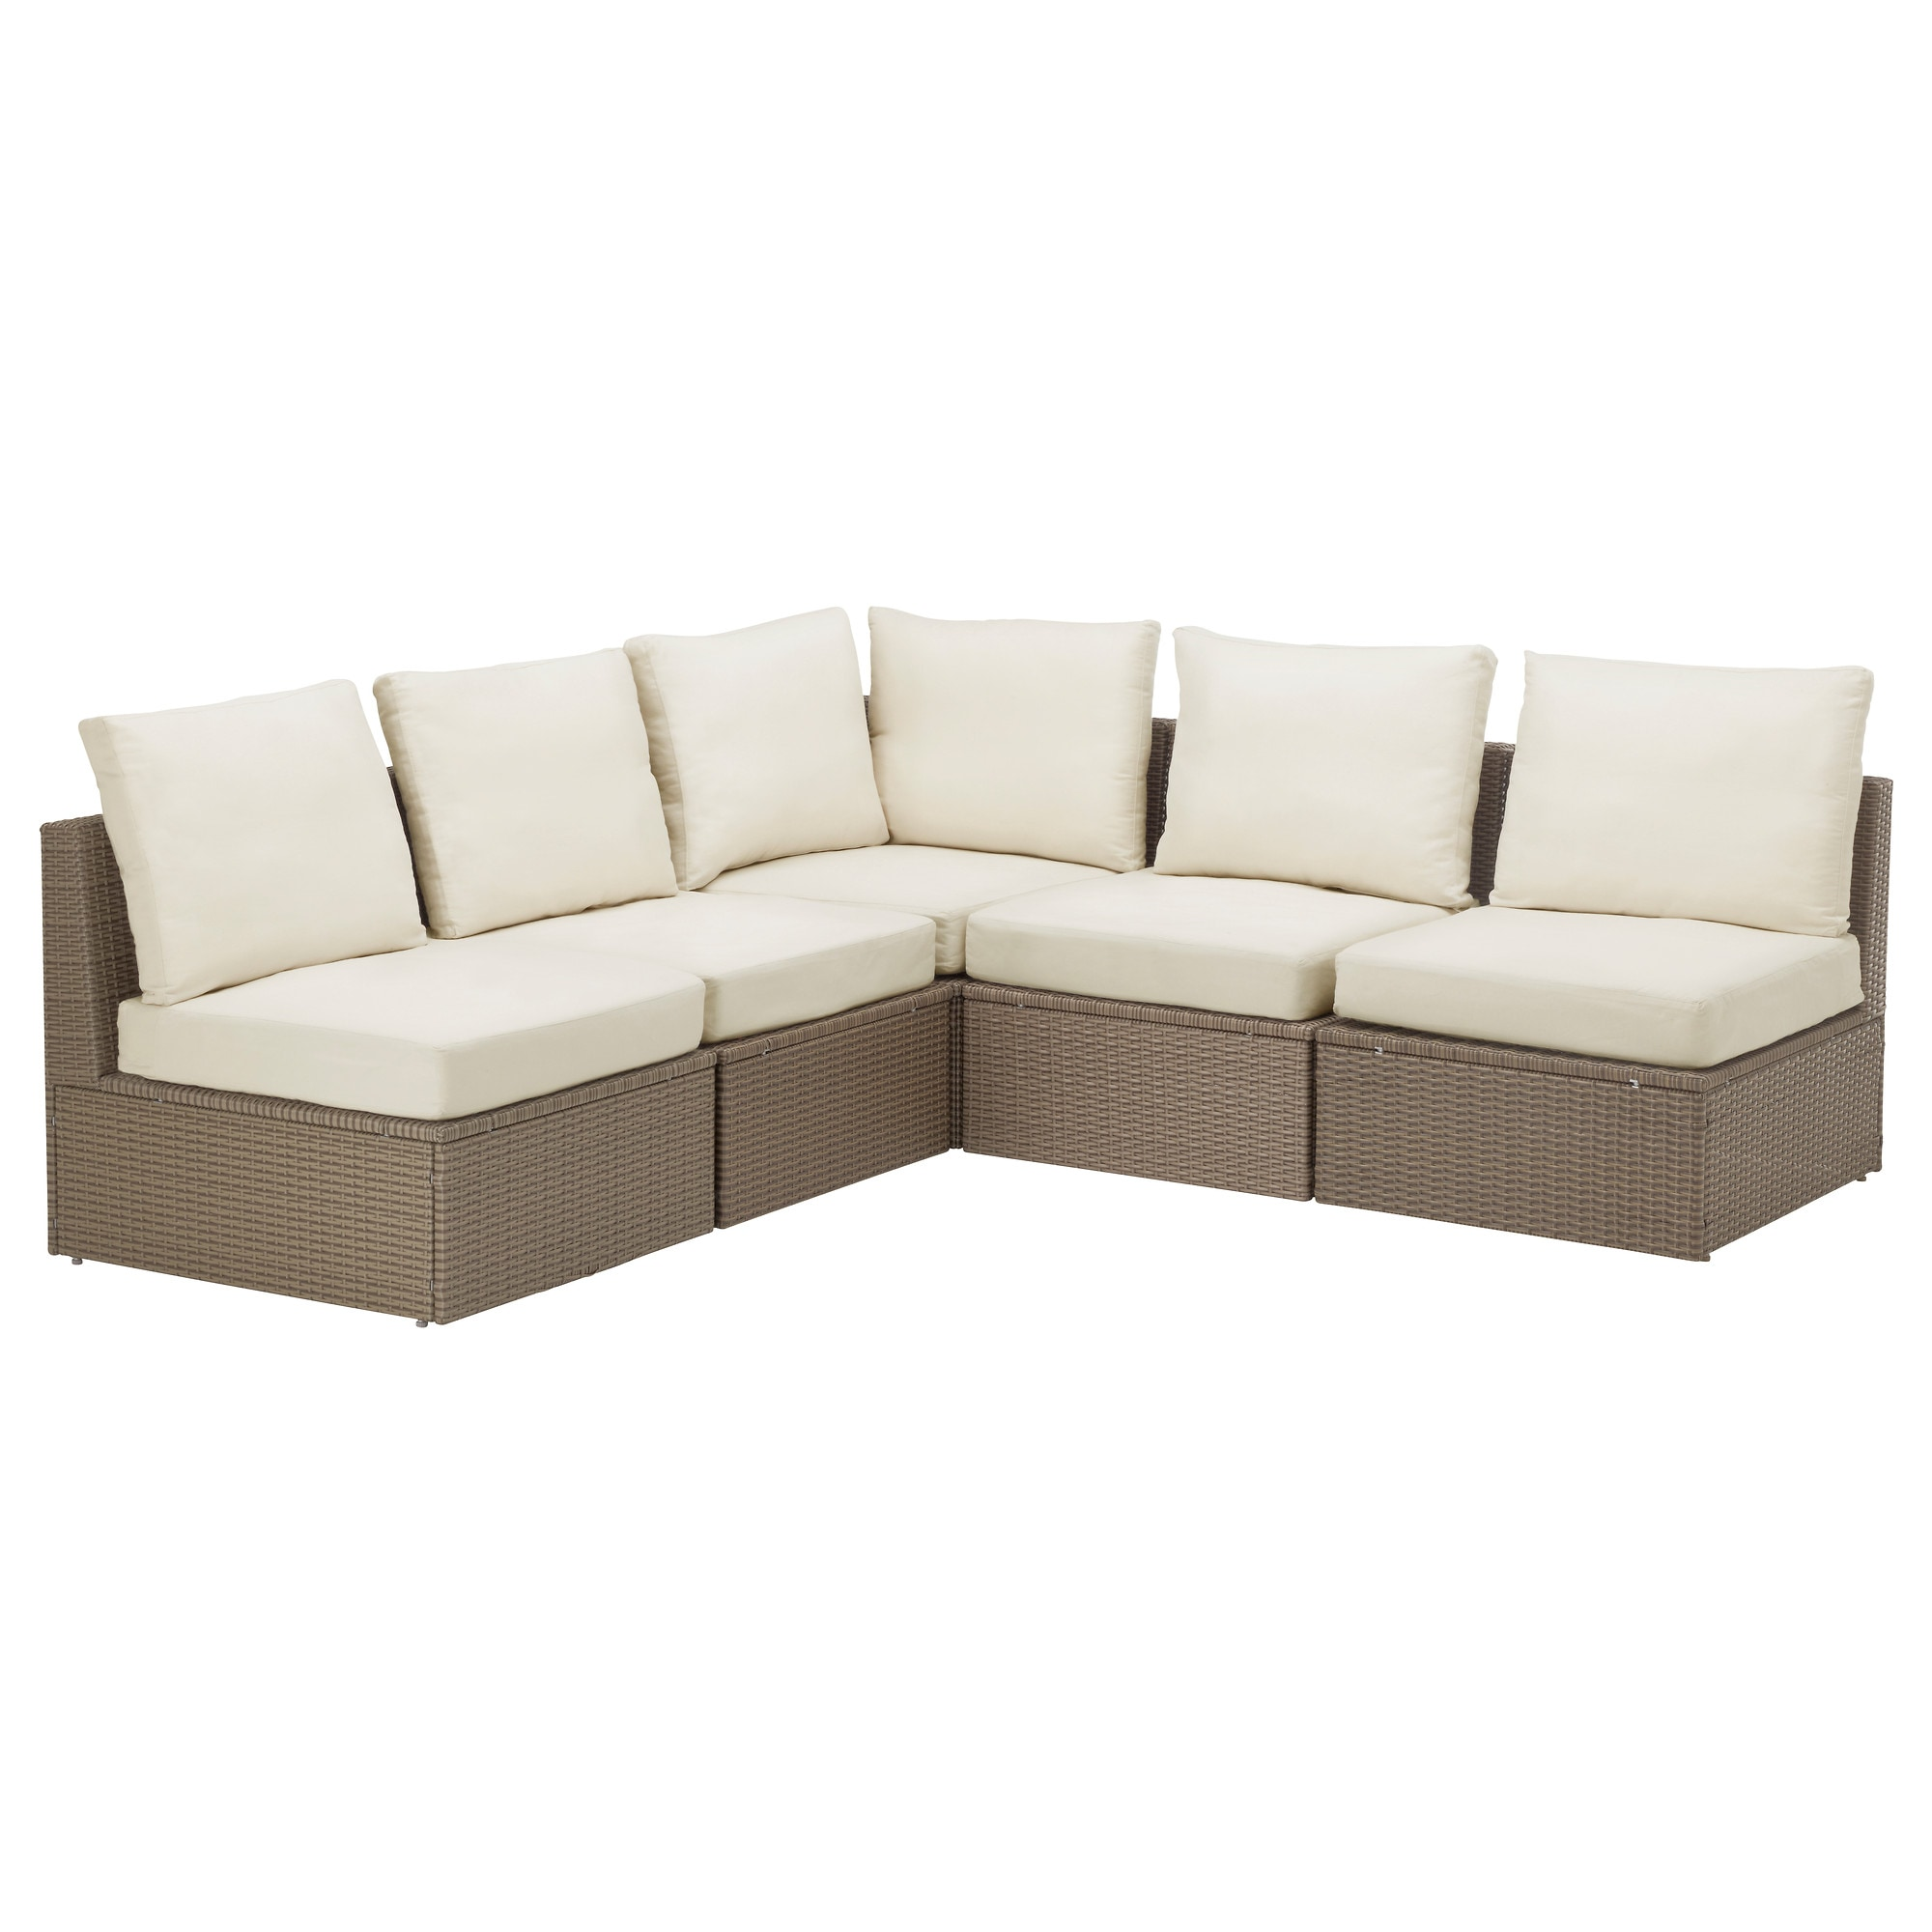 Stylish Affordable Contemporary Furniture Sectional Sofa Bed Ikea Viewing  Also Sectional Sofas Ikea